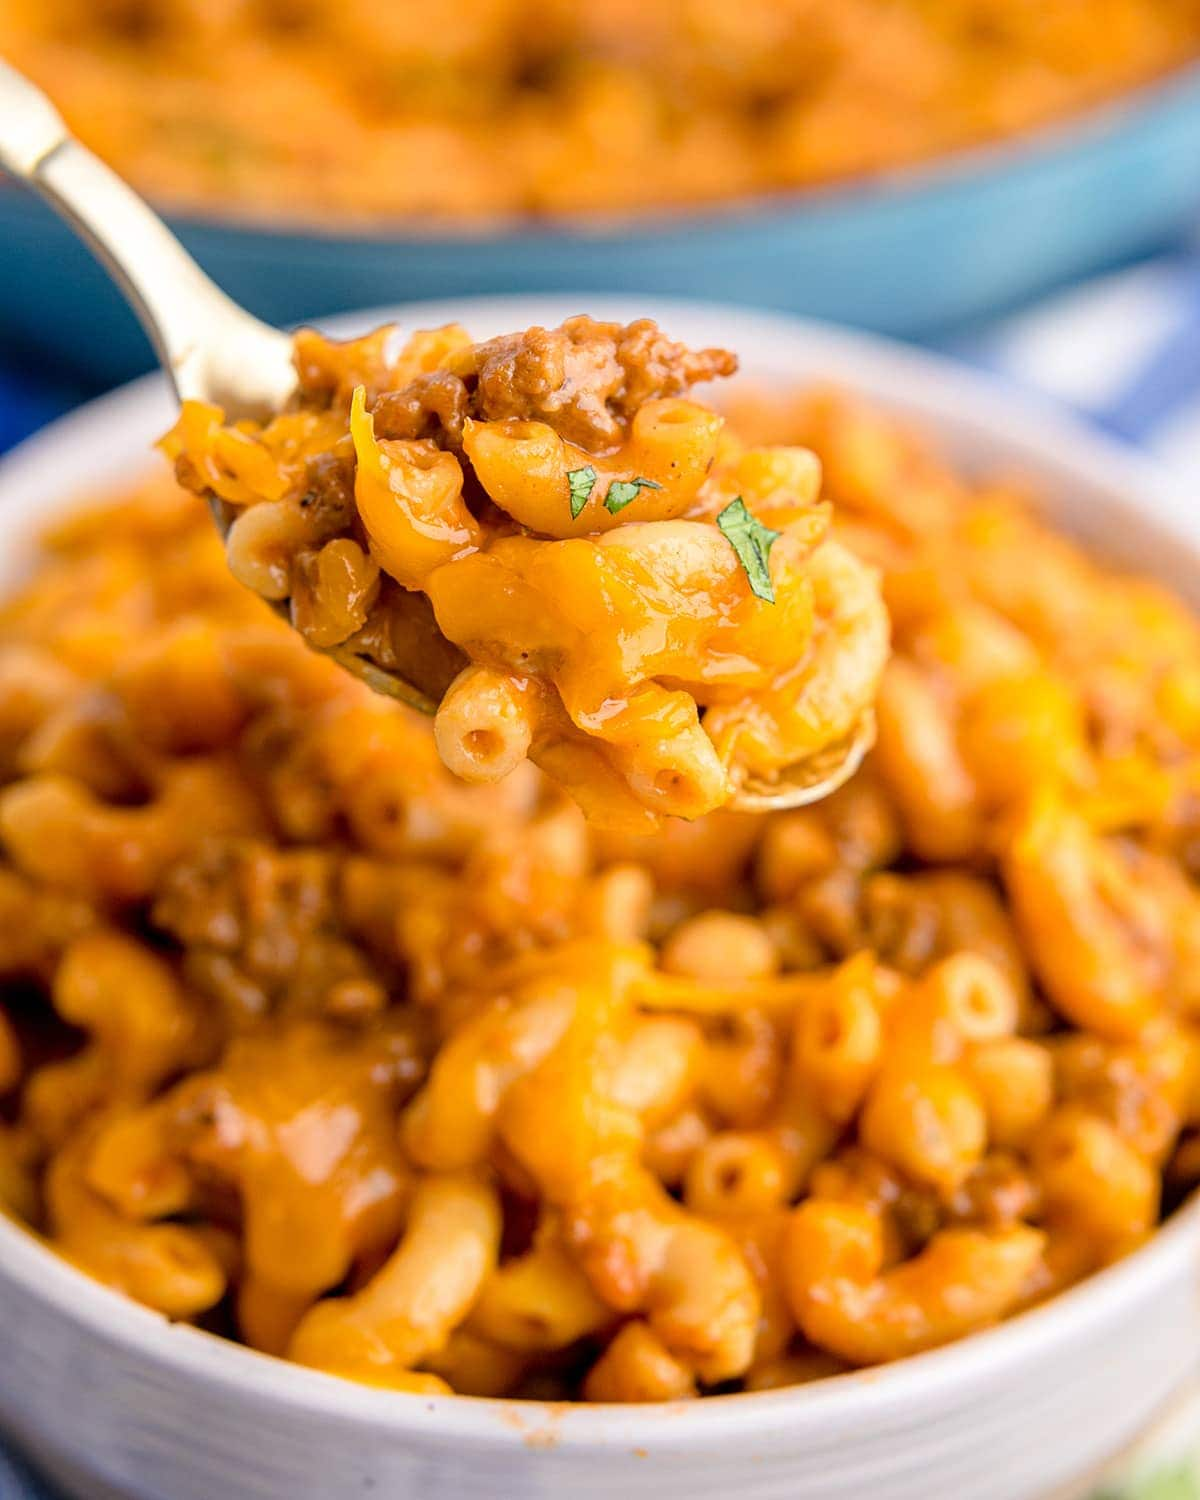 A spoonful of homemade hamburger helper being held above a bowl.